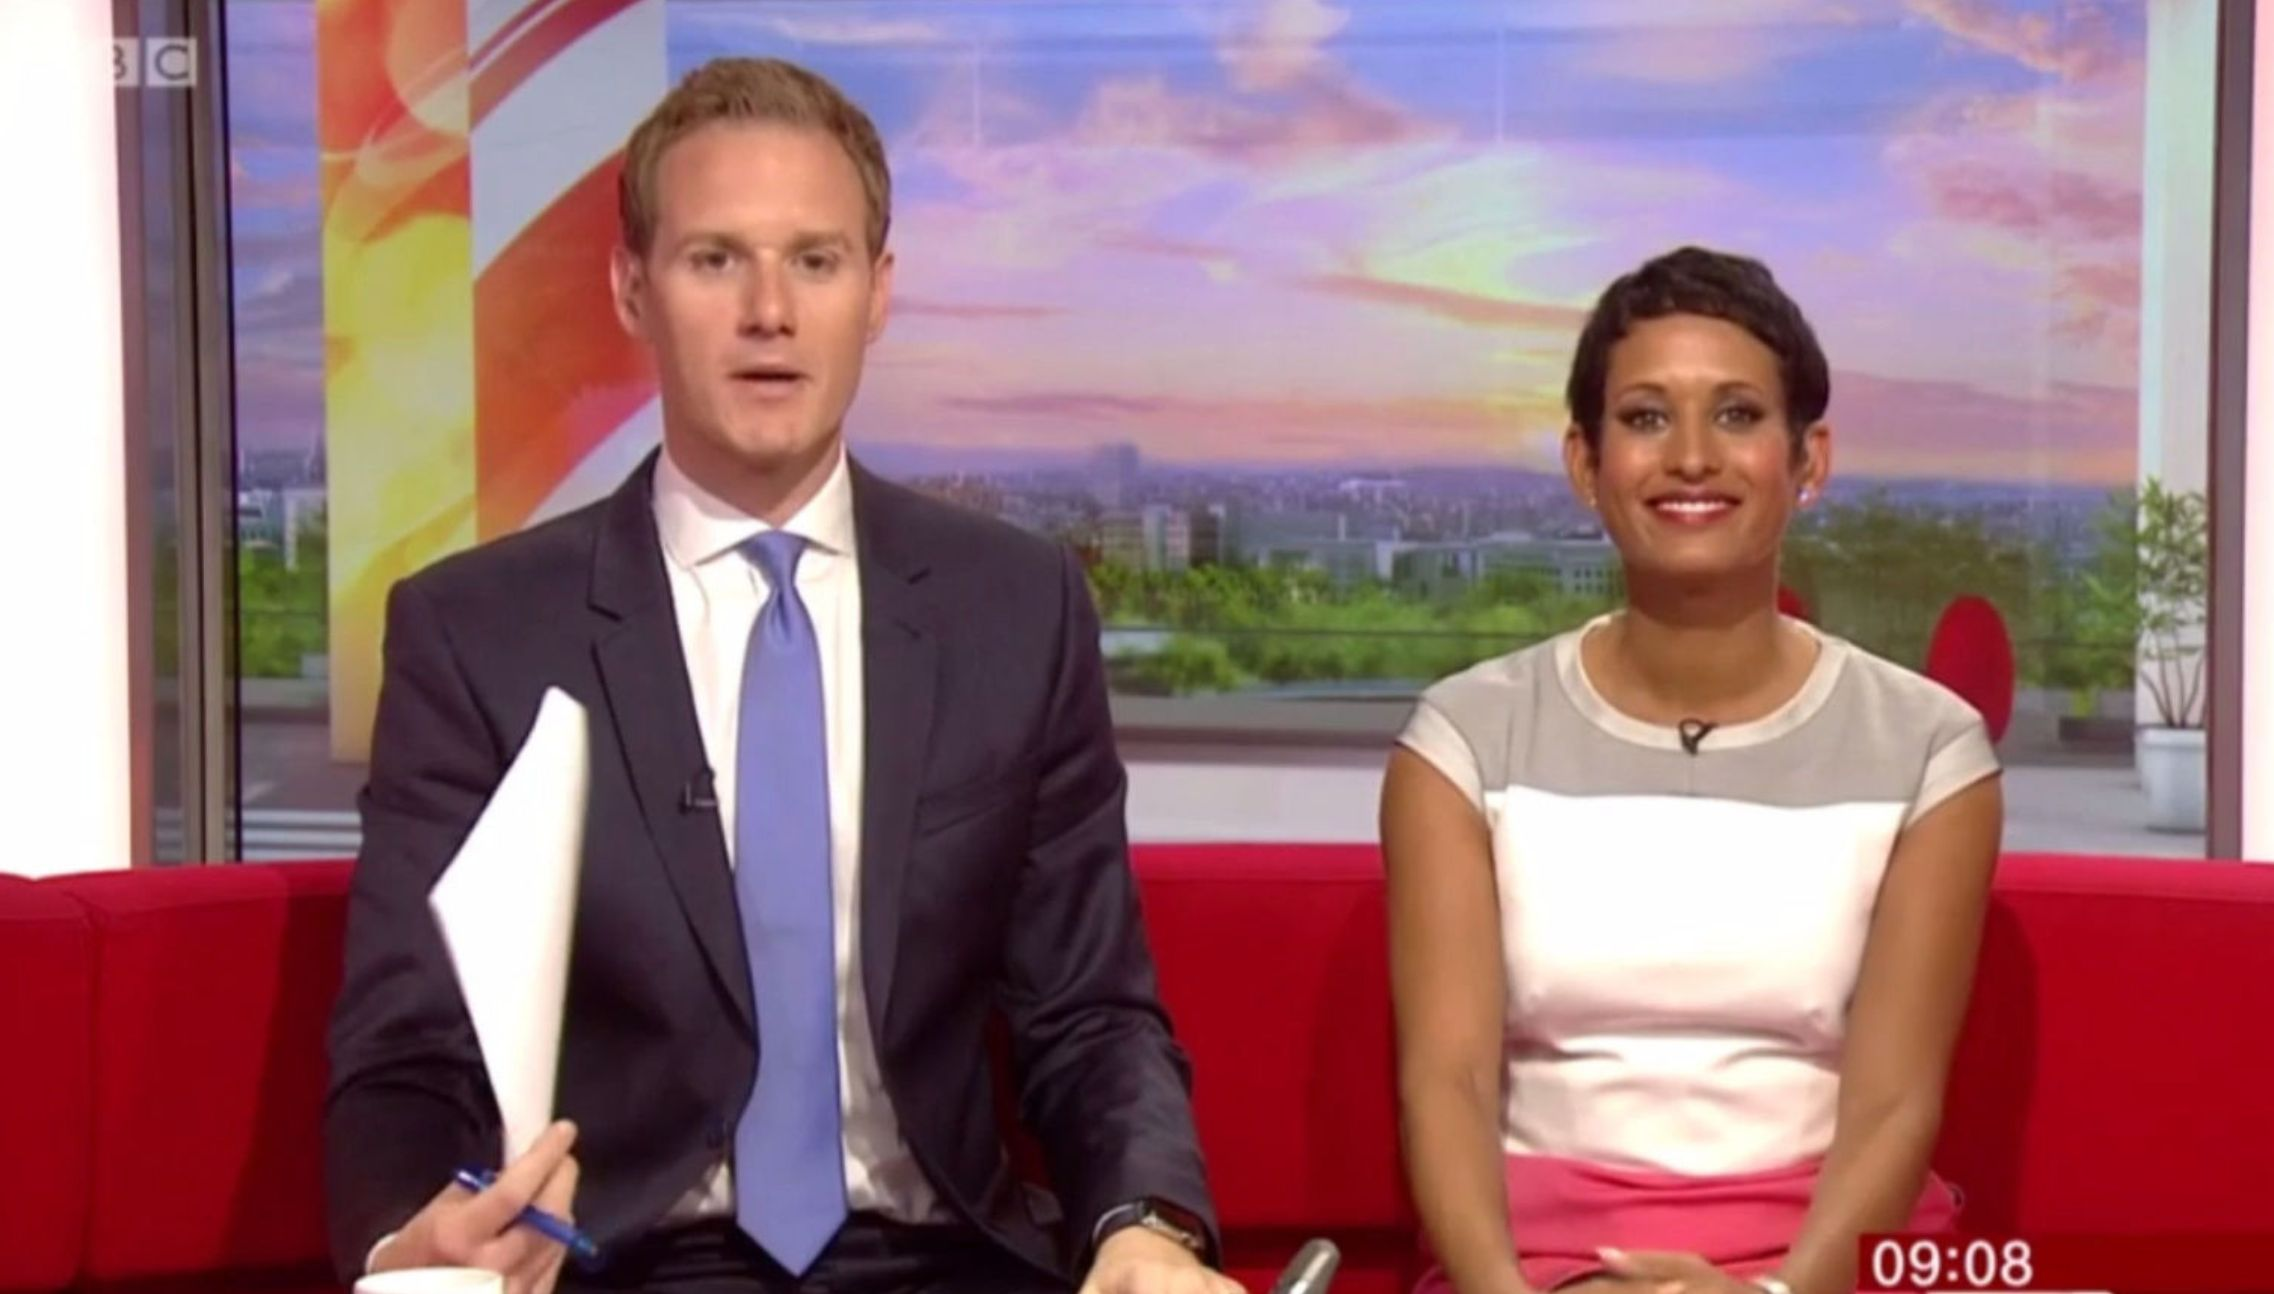 'BBC Breakfast' Host Dan Walker Accidentally Drops C-Bomb In 'Culture' Blunder